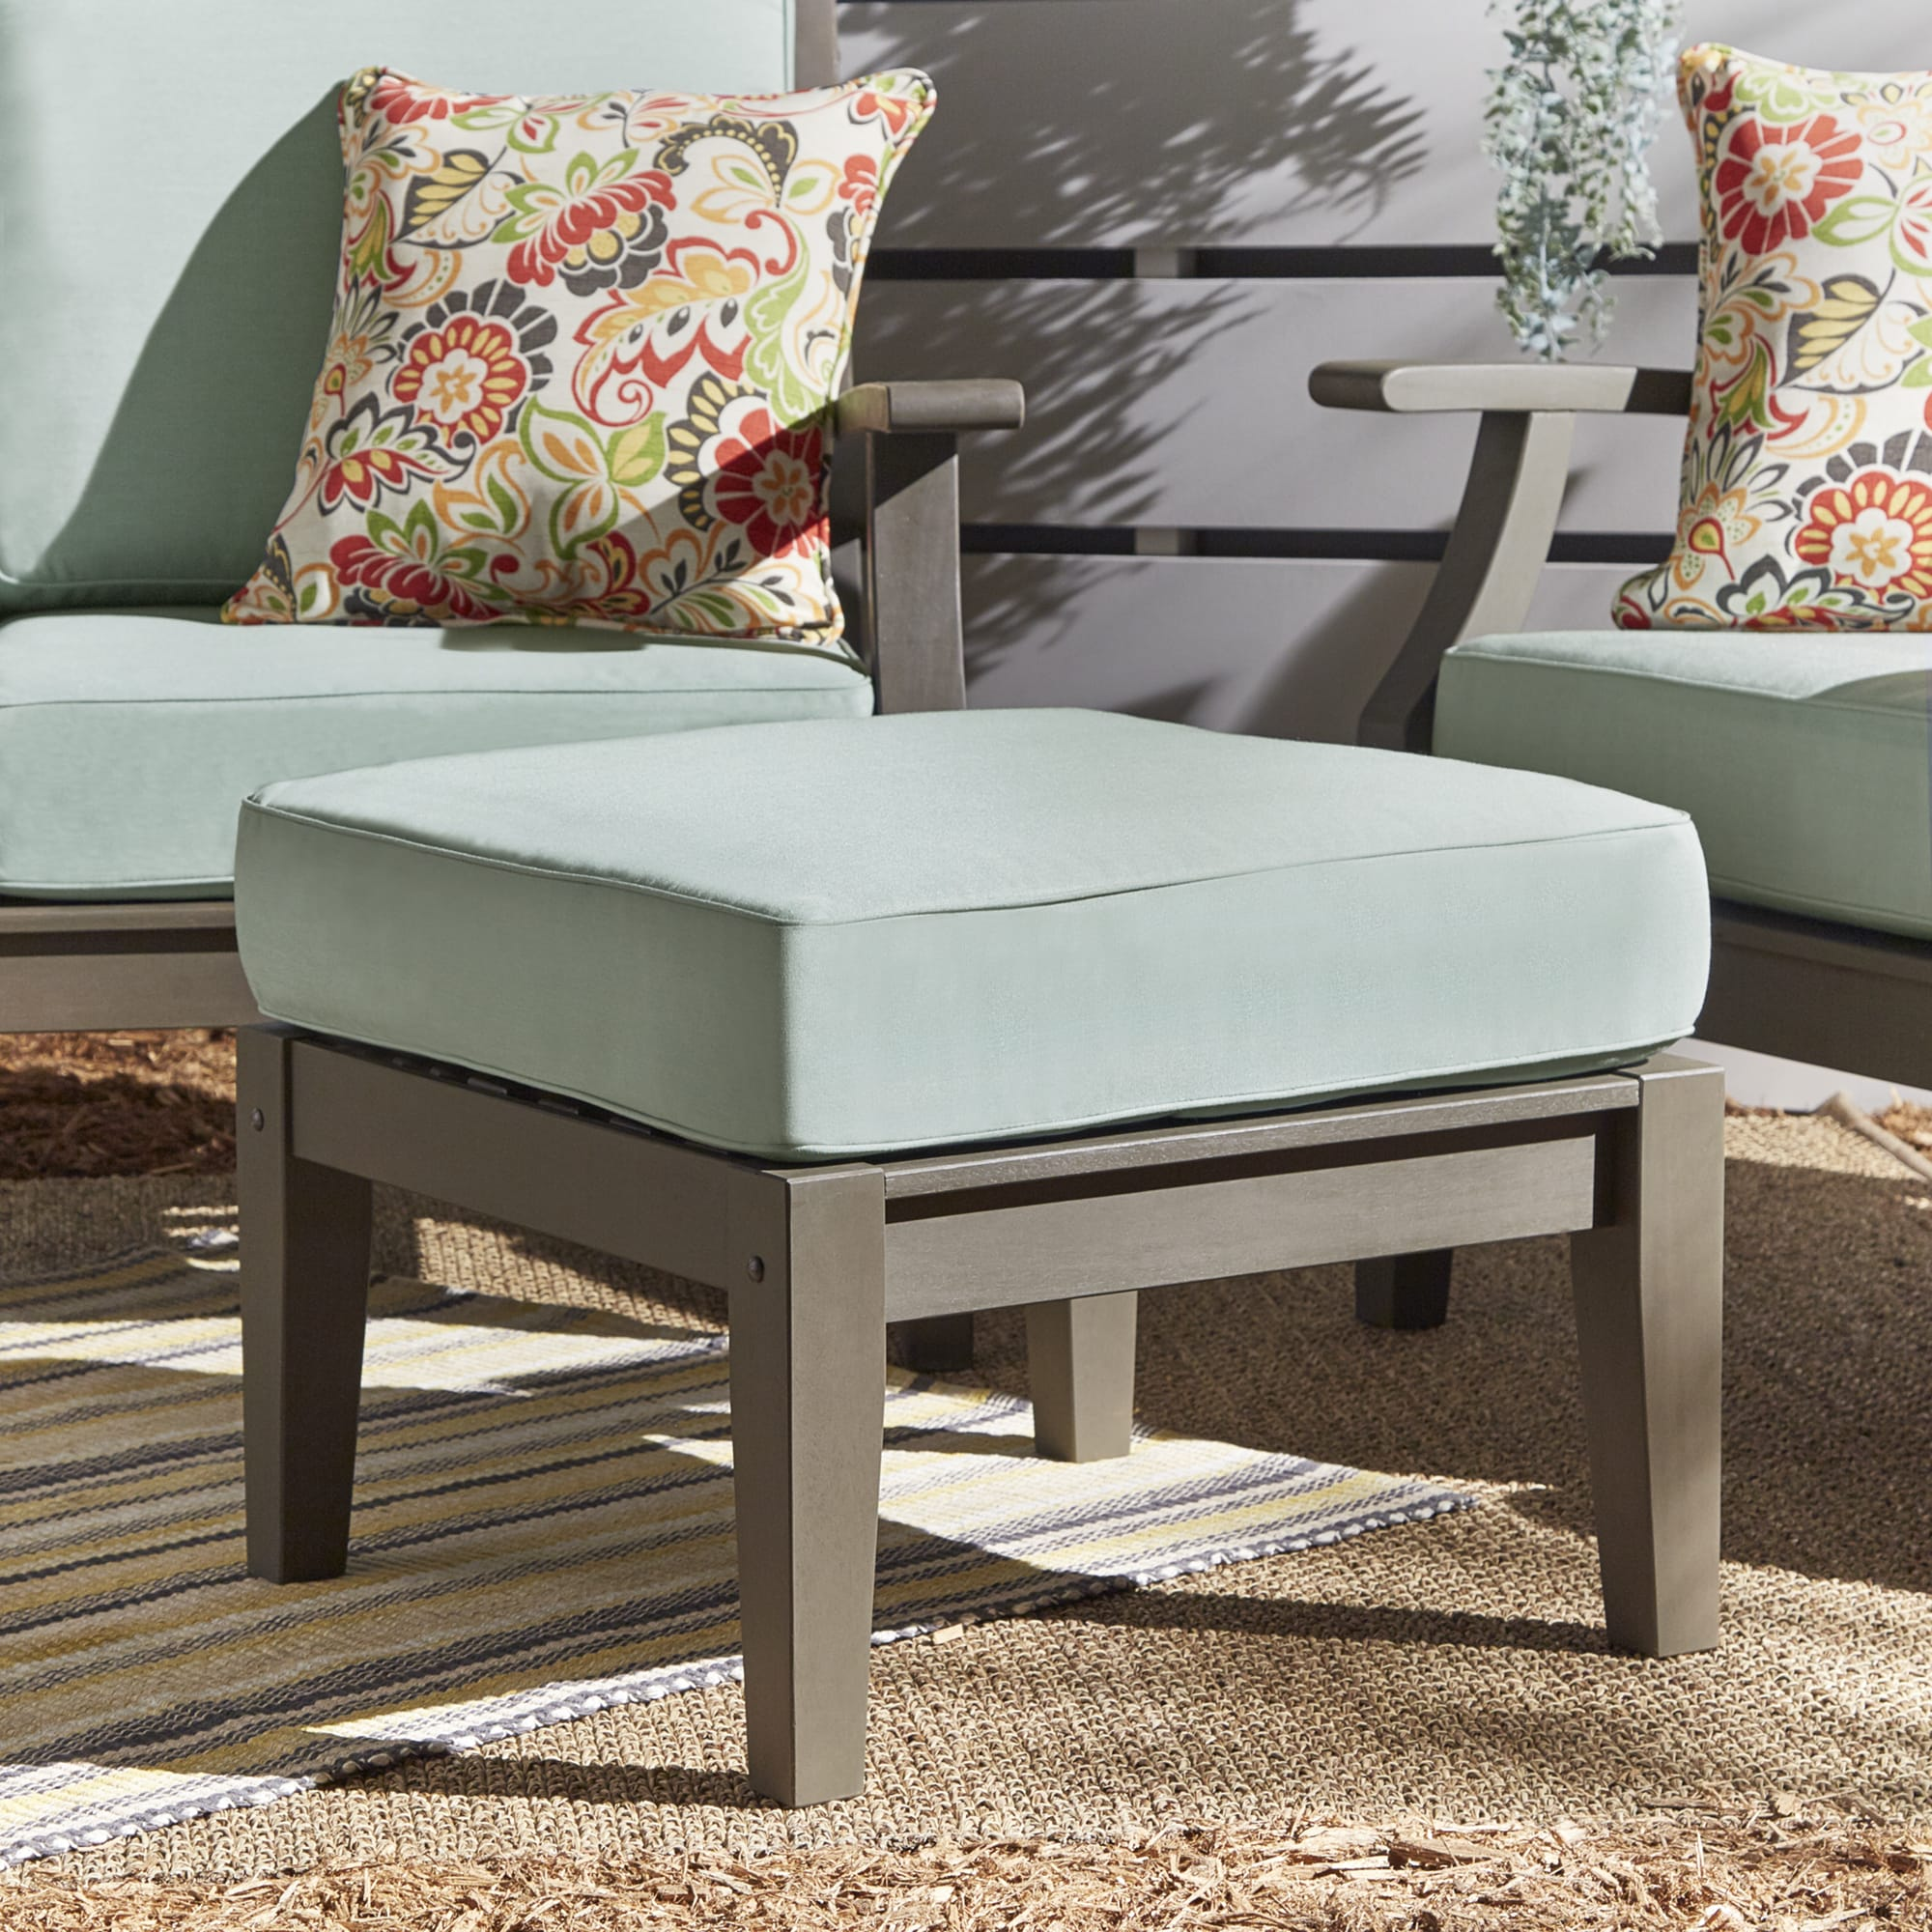 Yasawa Grey Wood Outdoor Ottoman Stool with Cushion iNSPIRE Q Oasis - Free  Shipping Today - Overstock.com - 19654165